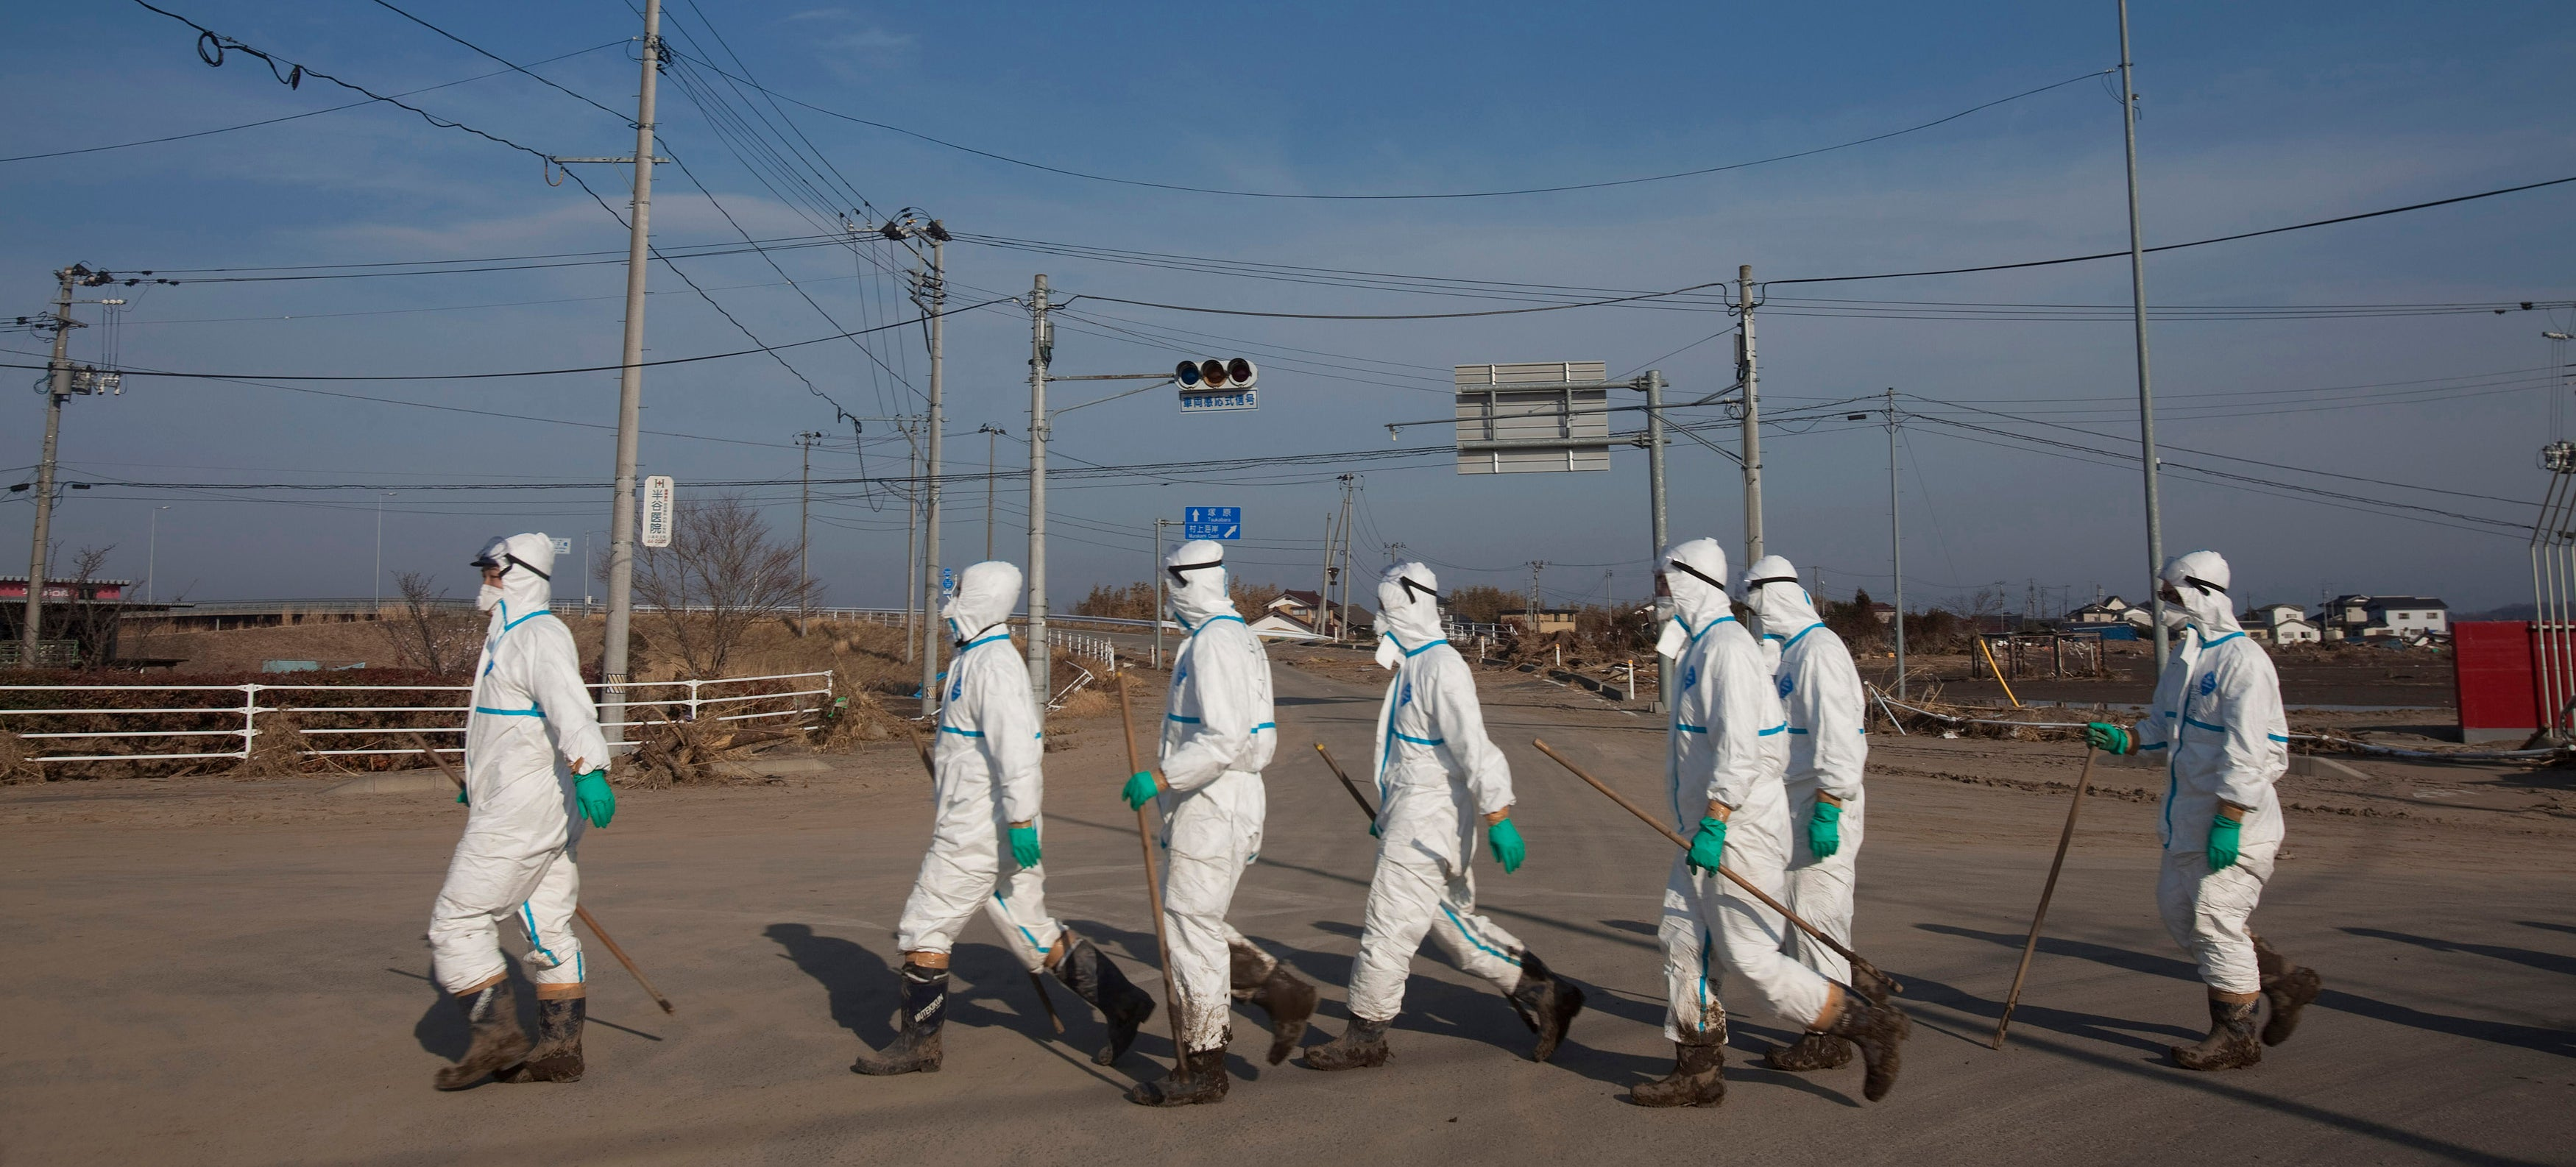 Should Fukushima's Radioactive Water Just Be Dumped In the Ocean?